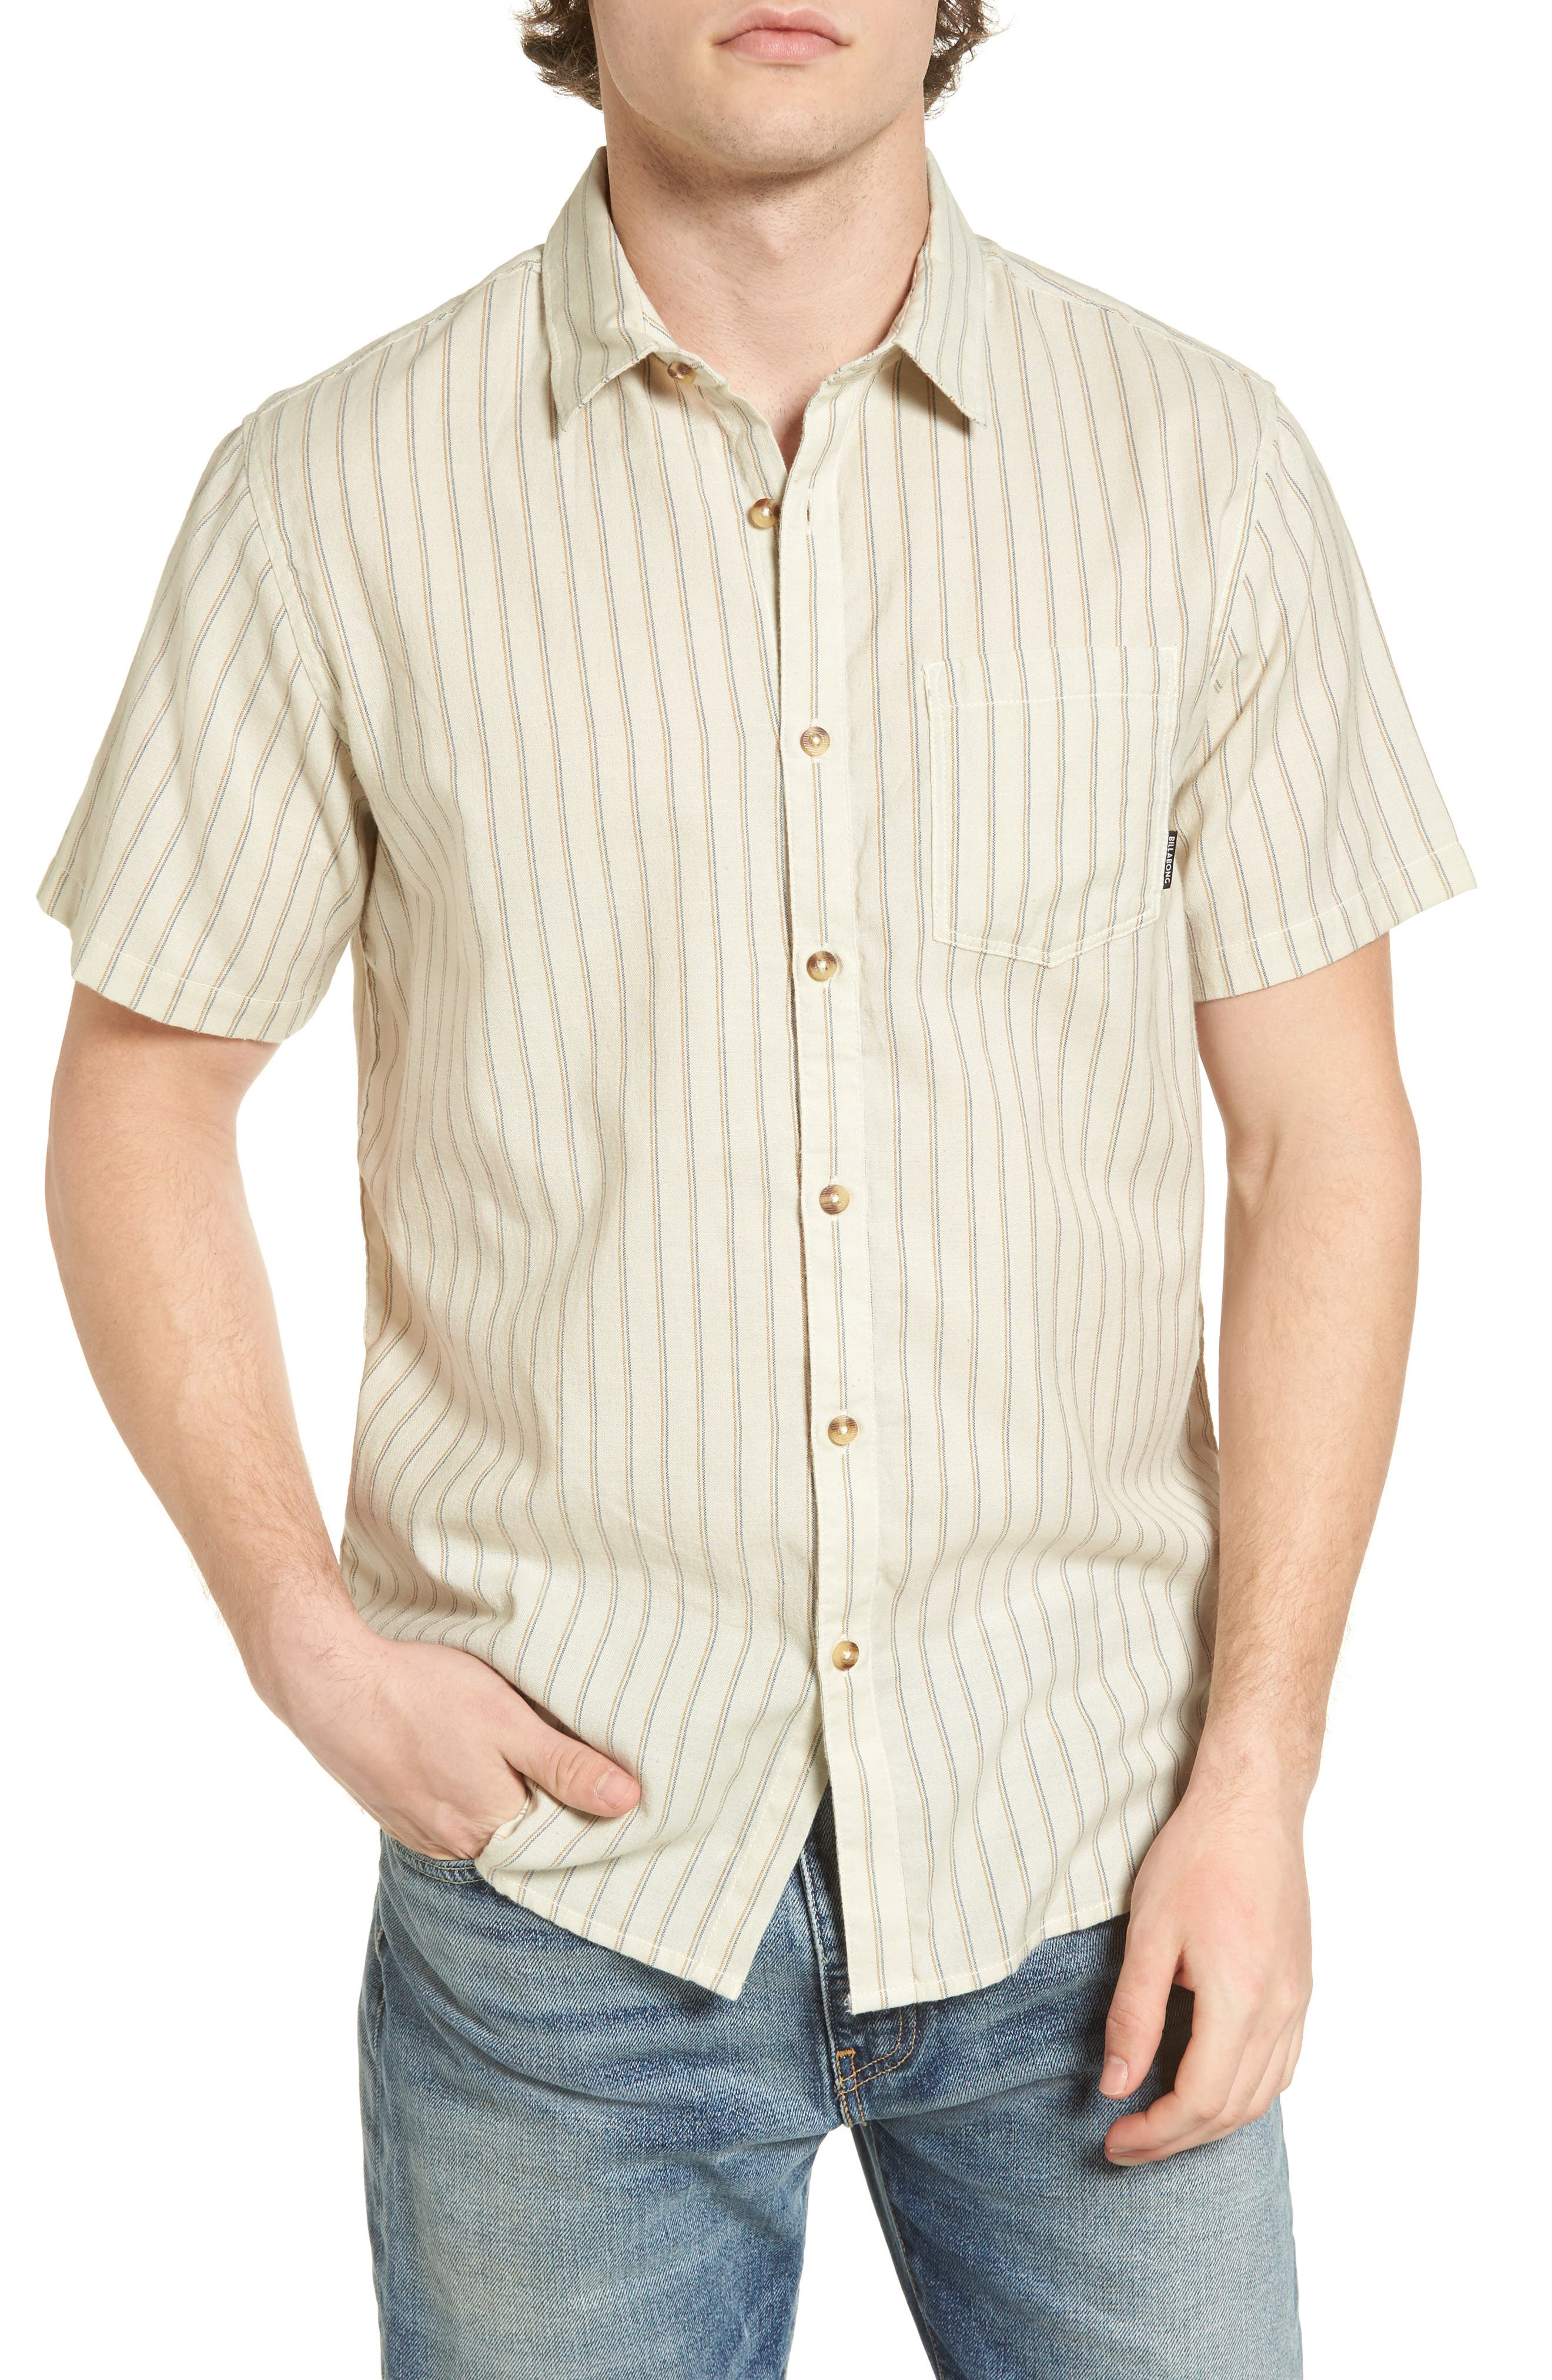 Kelso Tailored Fit Stripe Shirt,                         Main,                         color, 061